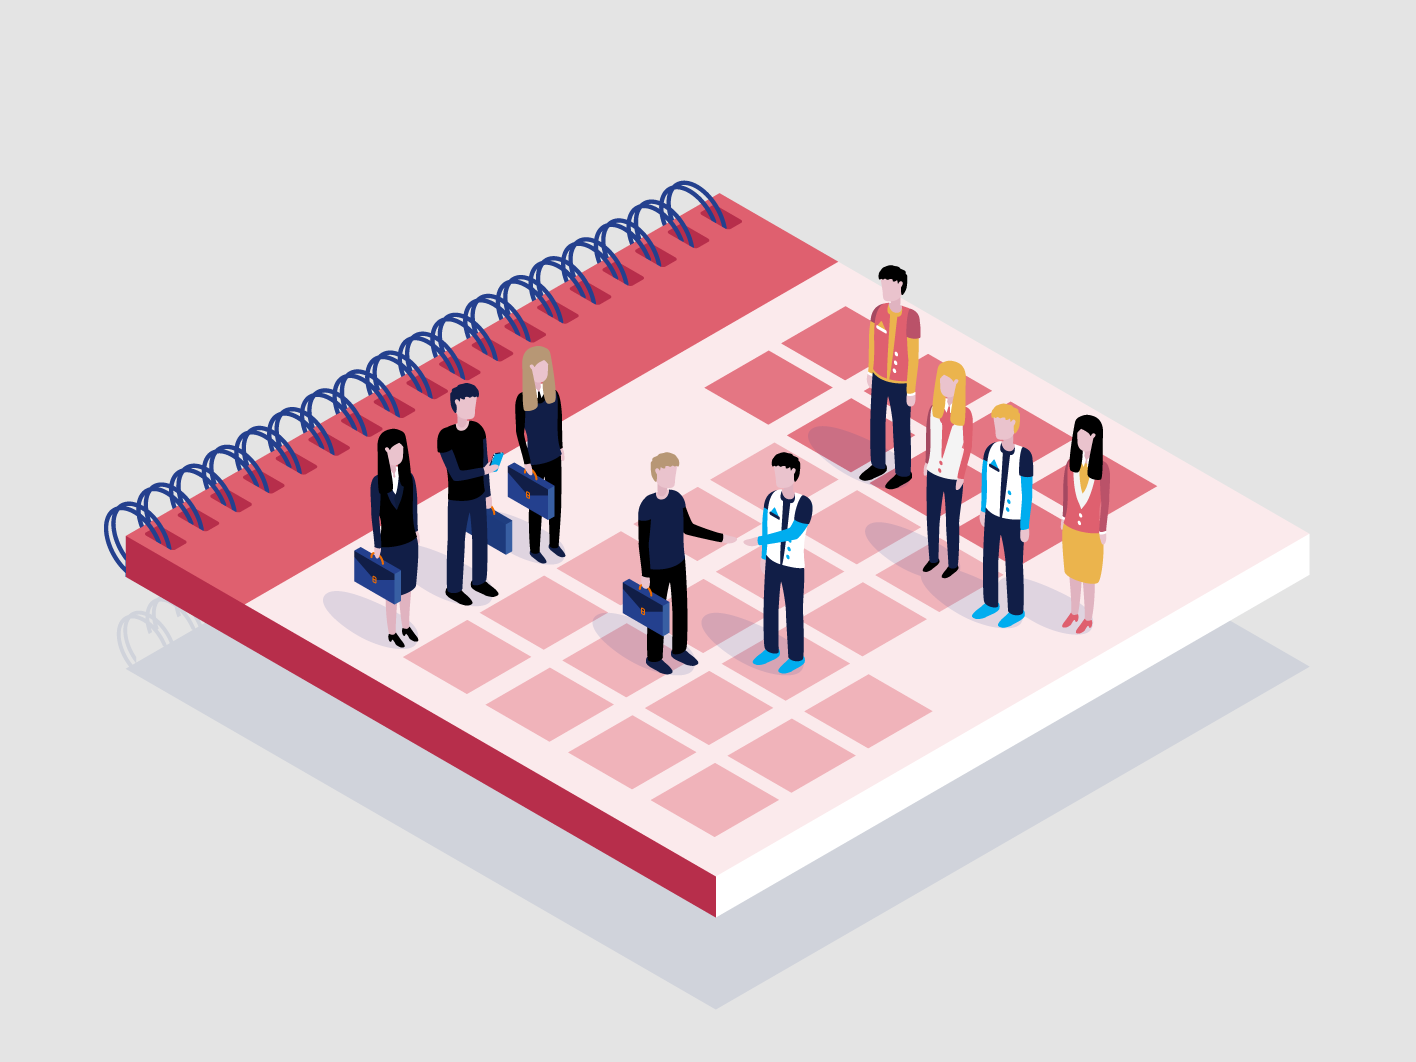 Aand another one isometric illustration for a brand guide branding isometric colorful design colorful art vector illustrator illustration design